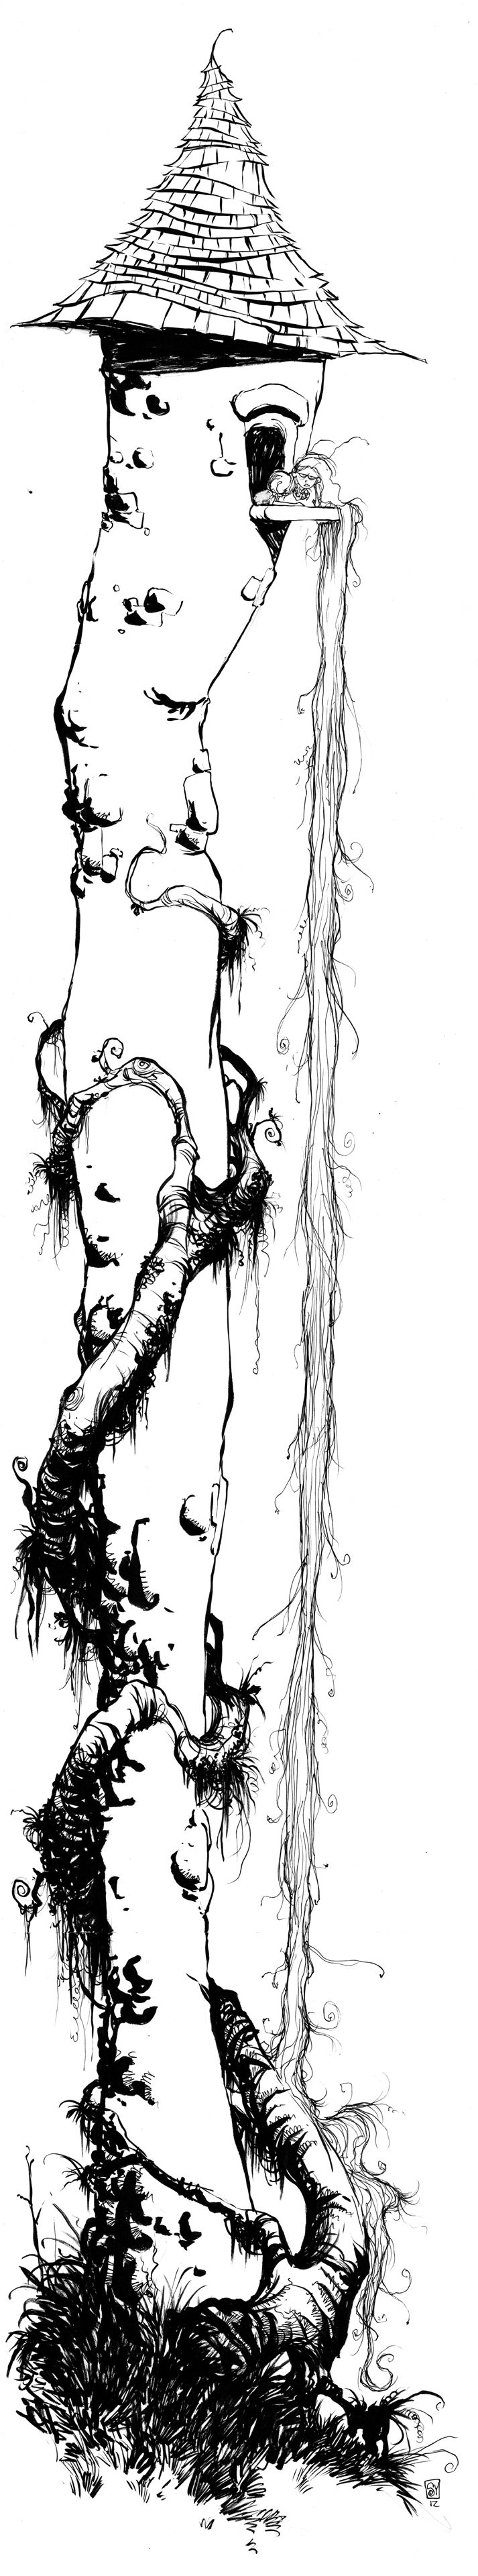 Rapunzel Daily Sketch by the incomparable Skottie Young on DeviantArt